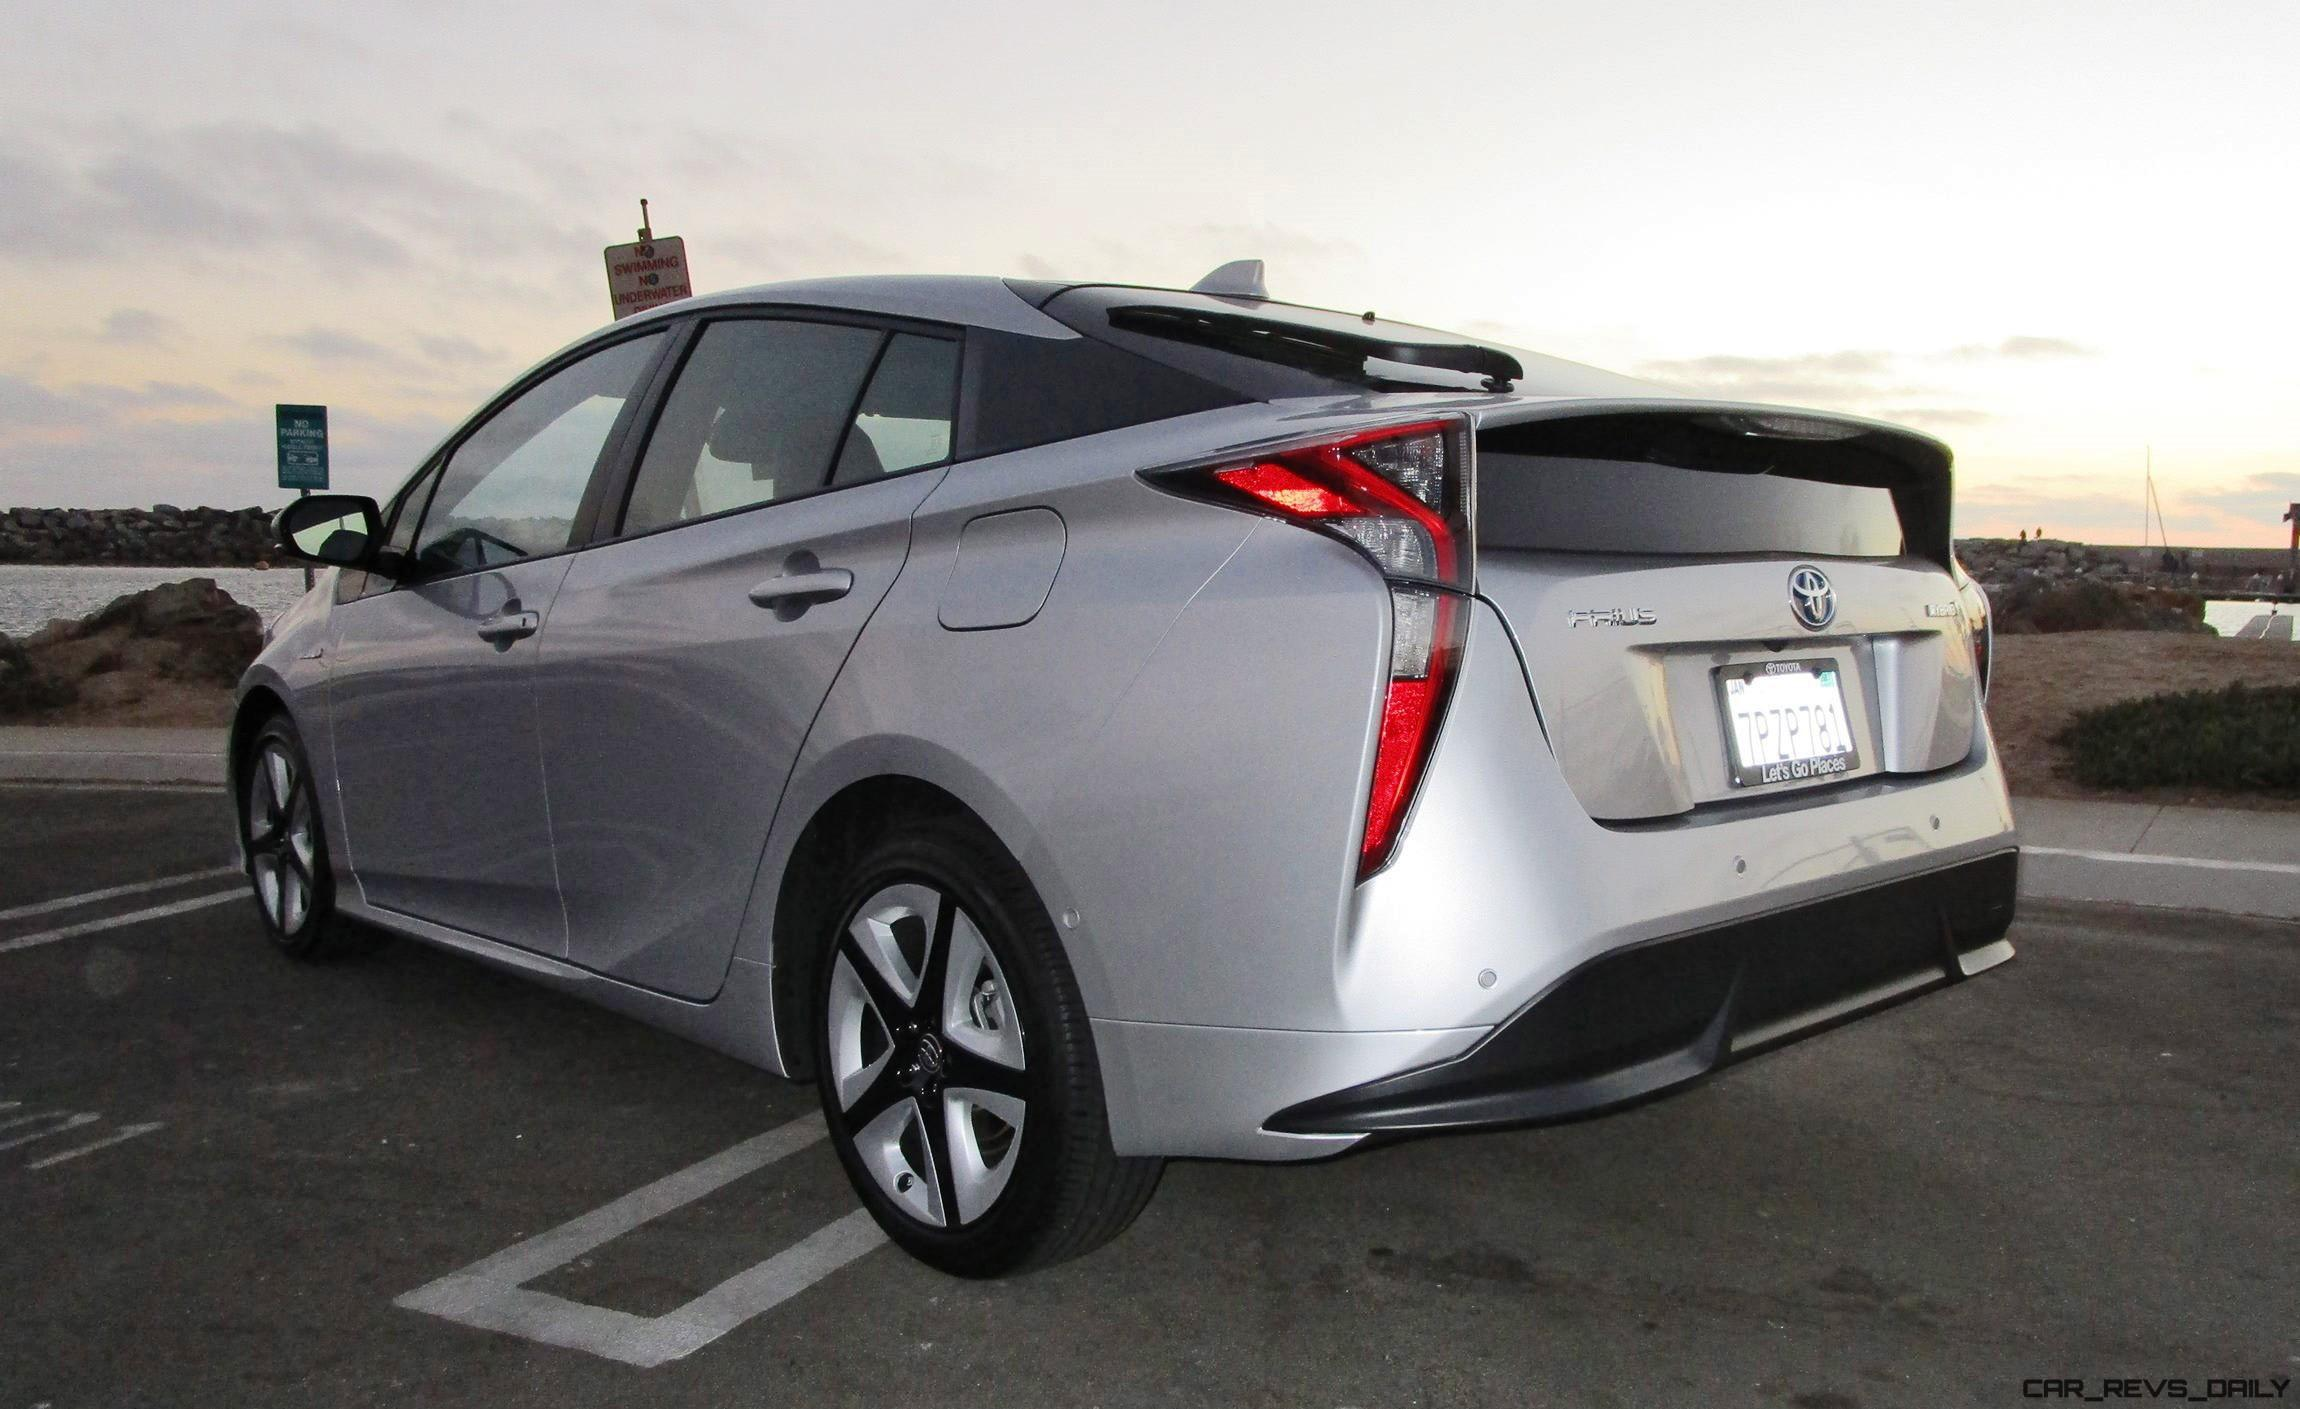 2016 toyota prius four touring road test review by ben lewis. Black Bedroom Furniture Sets. Home Design Ideas